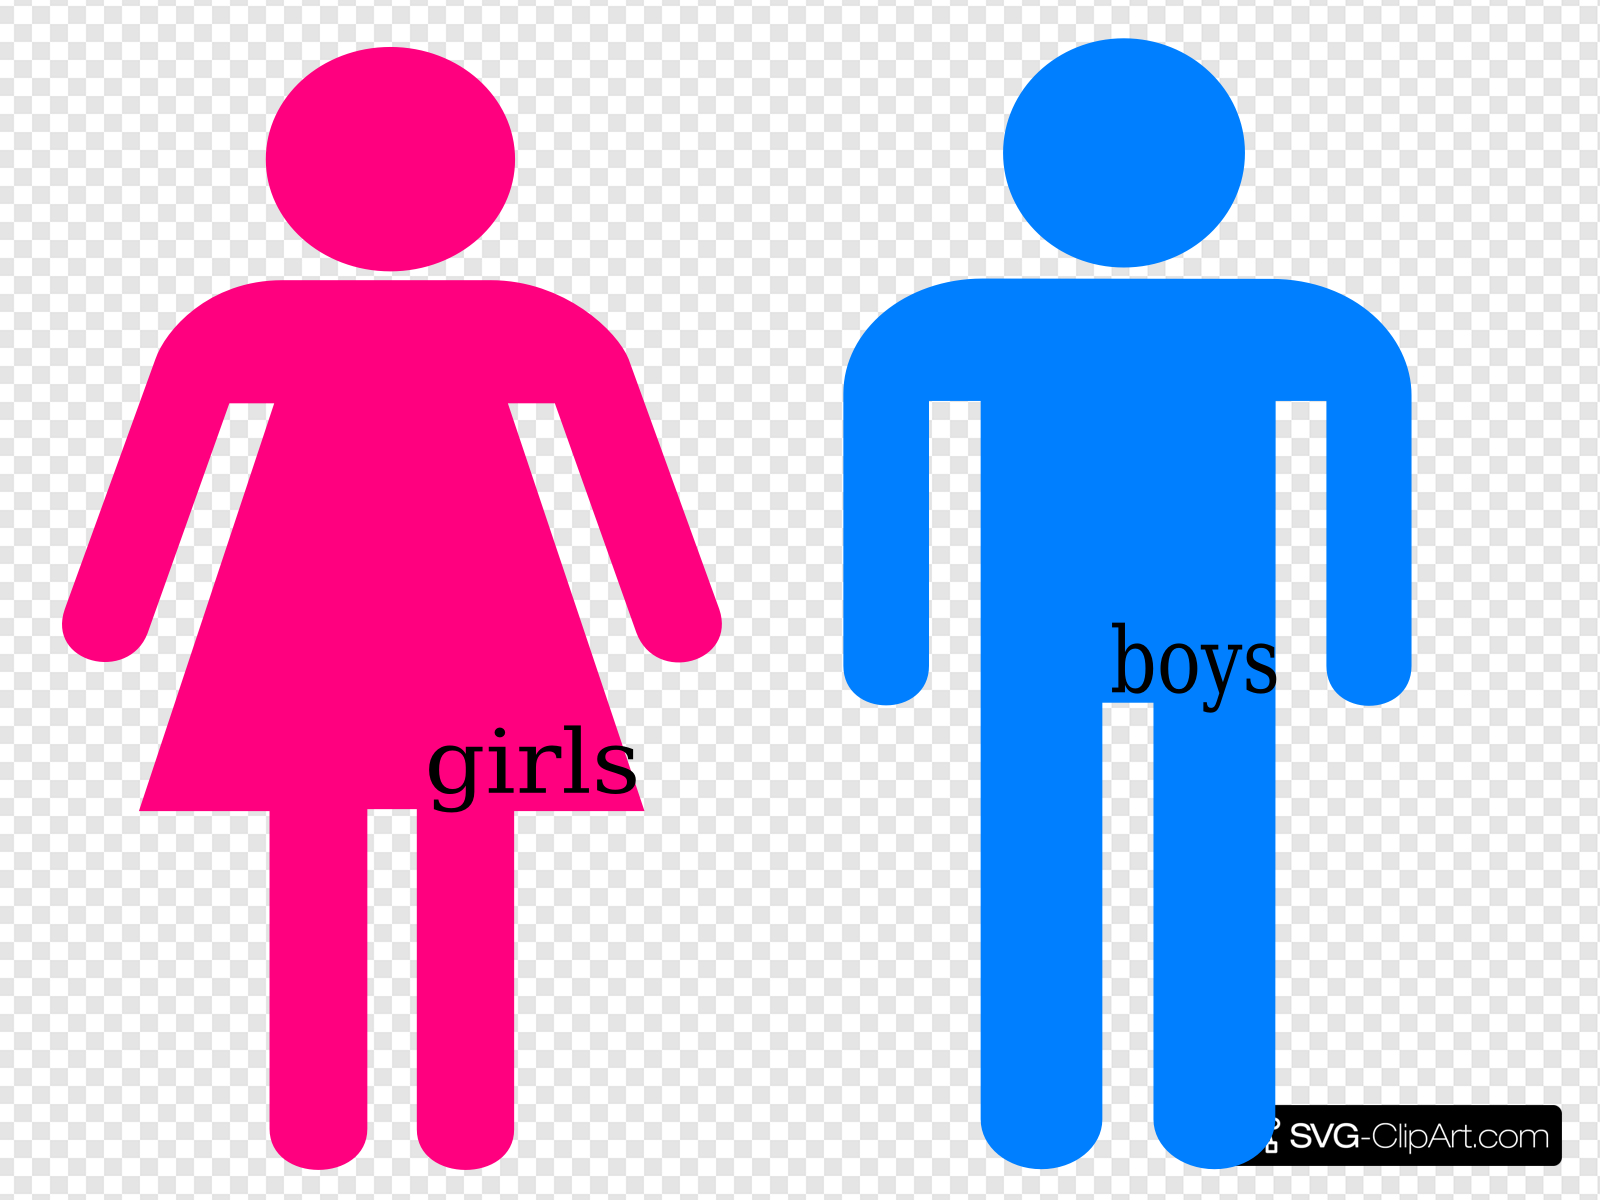 Bathroom girl clipart graphic library Bathroom Passes Clip art, Icon and SVG - SVG Clipart graphic library